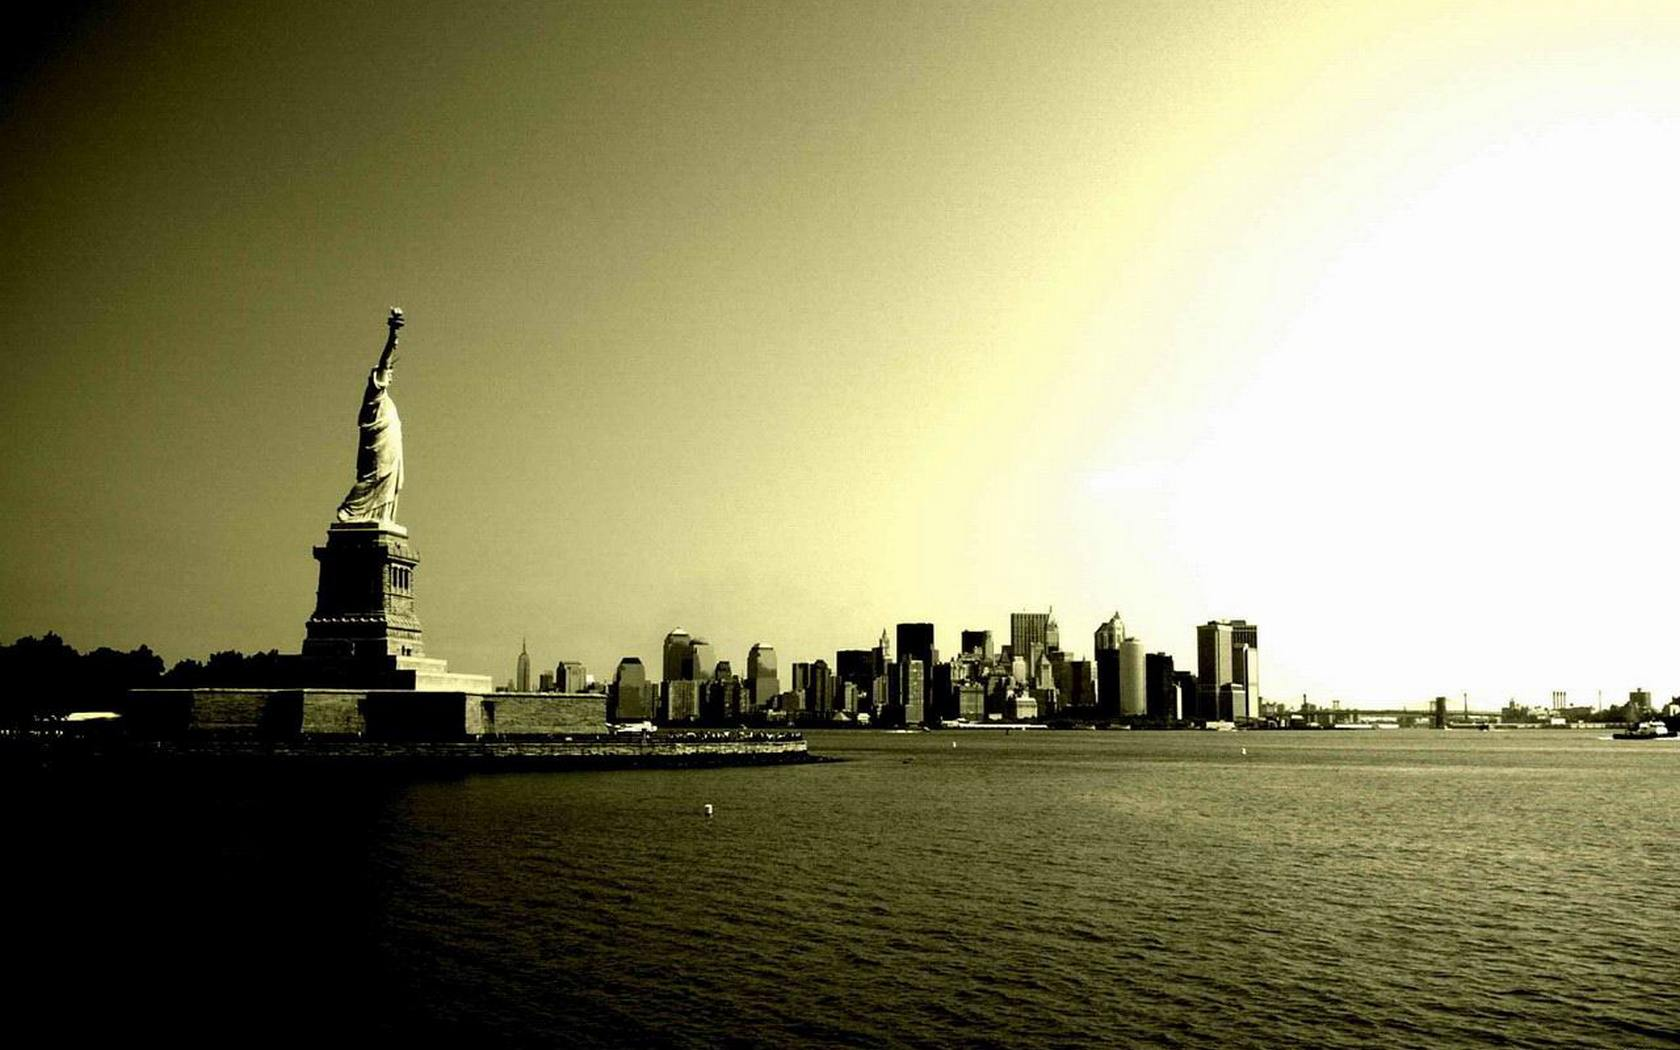 4k Statue Of Liberty Wallpapers High Quality Download Free